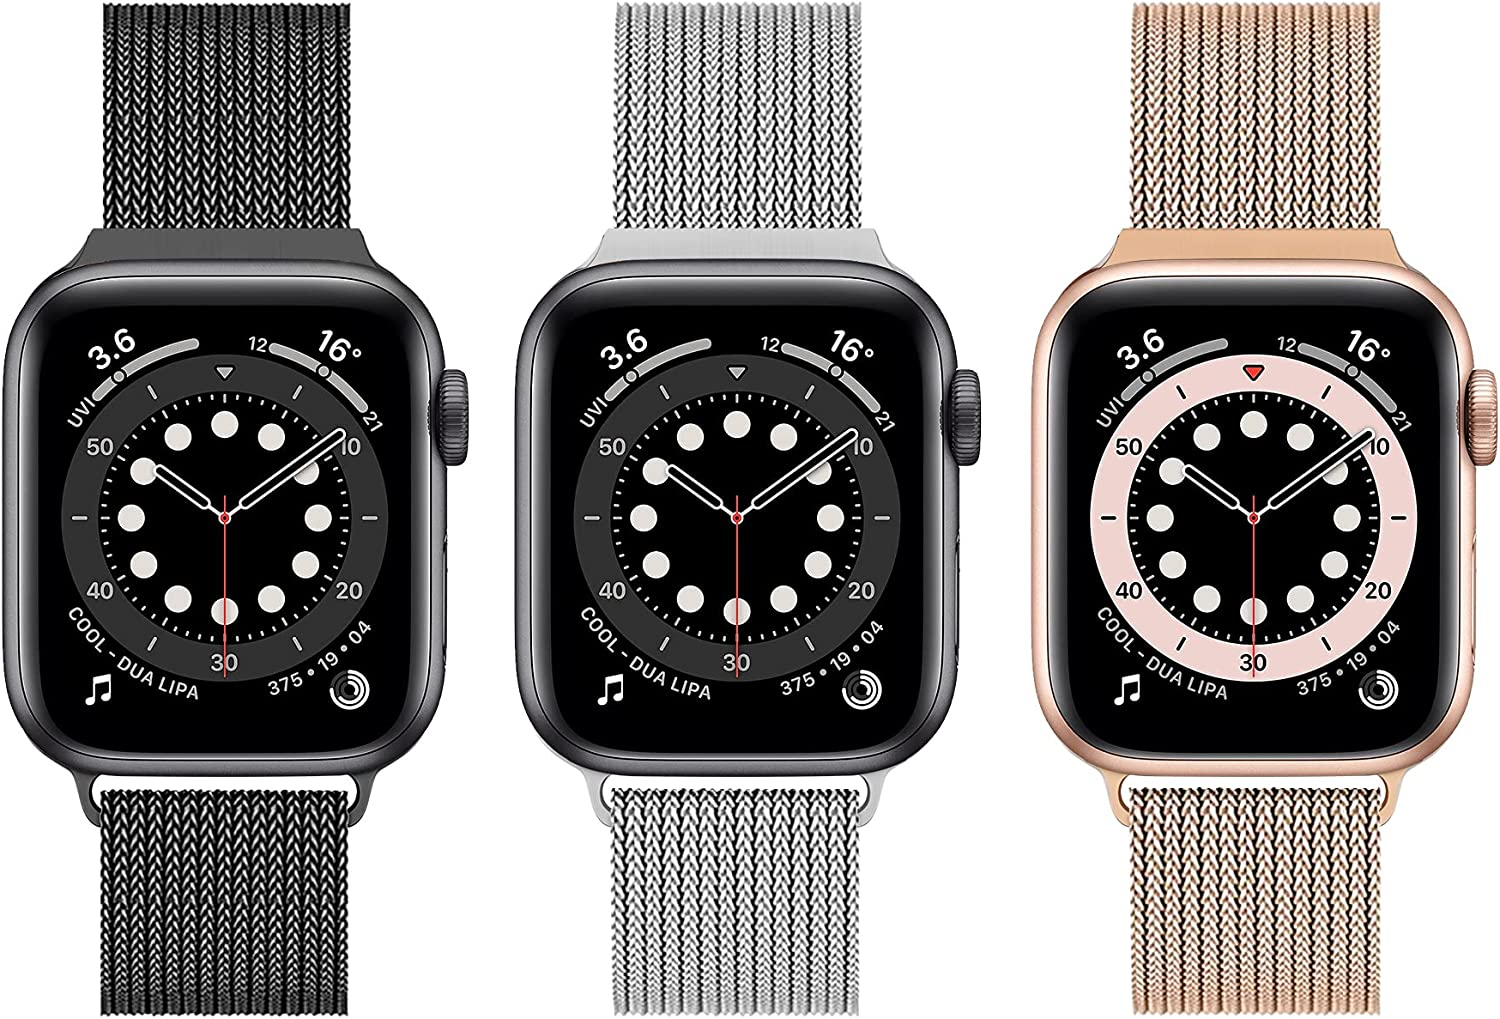 Latband Metal Magnetic Bands Compatible With Apple Watch Band 38 mm 40 mm 42 mm 44 mm, Stainless Steel Mesh Ring Metal Bands, Replaceable iWatch Apple Watch Bands Series 6/5/4/3/2/1/SE, 3 pieces